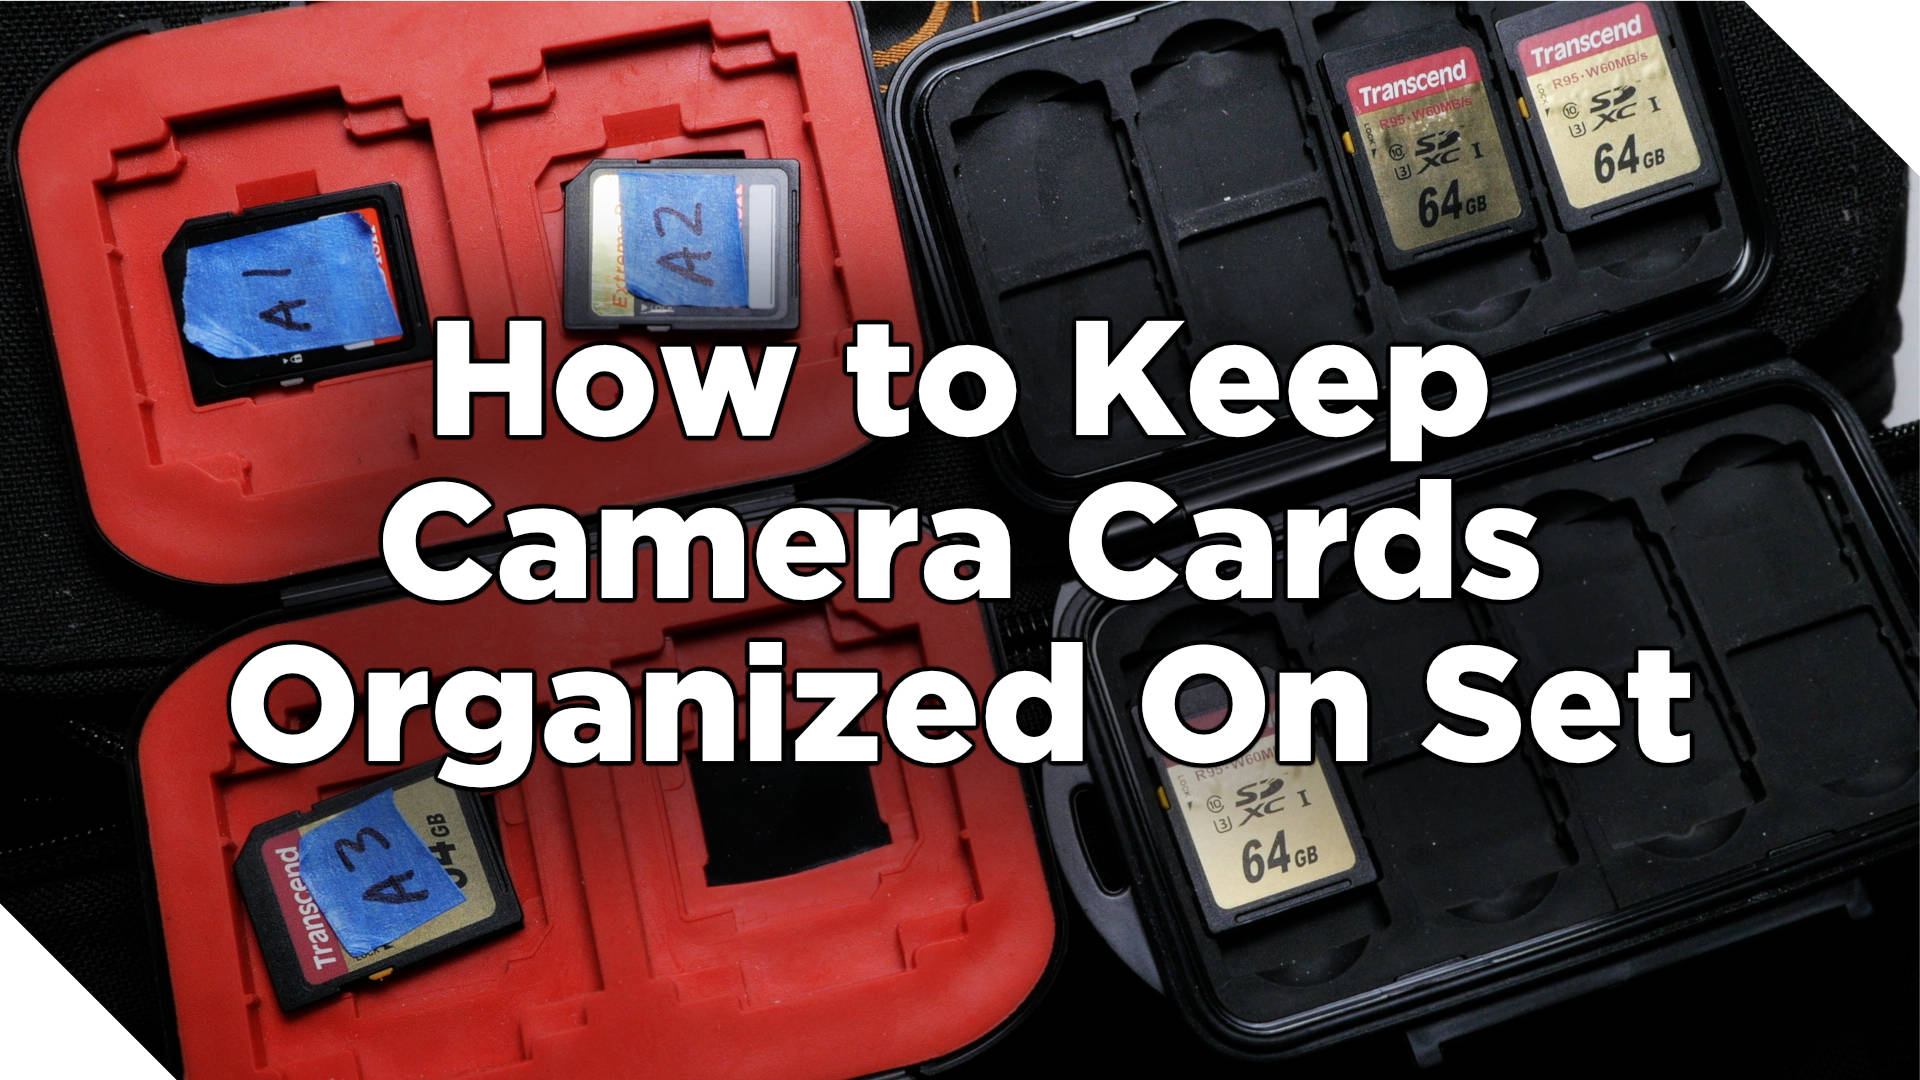 How to Keep Camera Cards Organized On Set